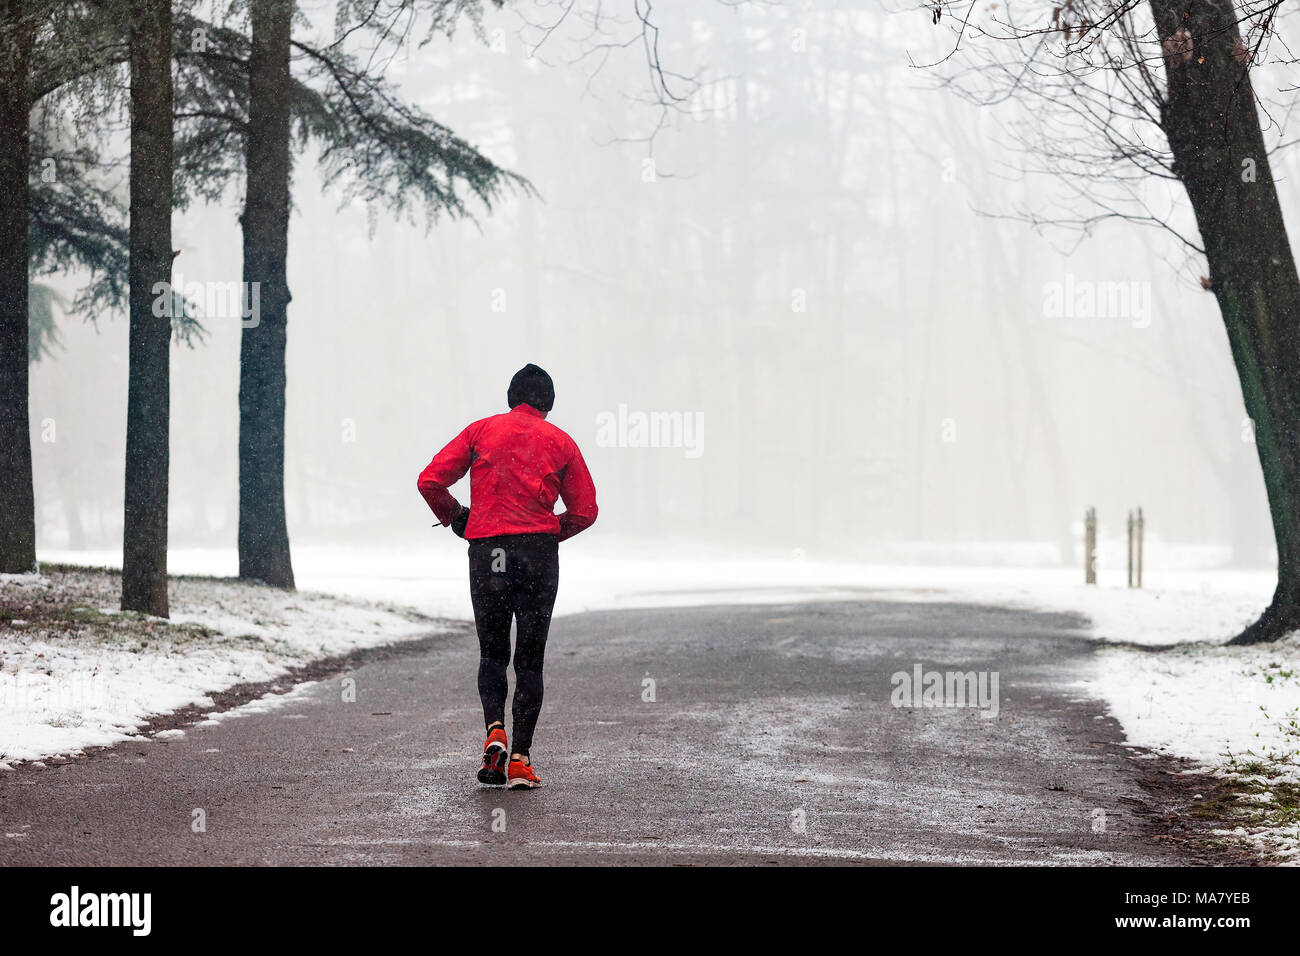 Running 26 Miles Through Slush and Snow Count Me In picture